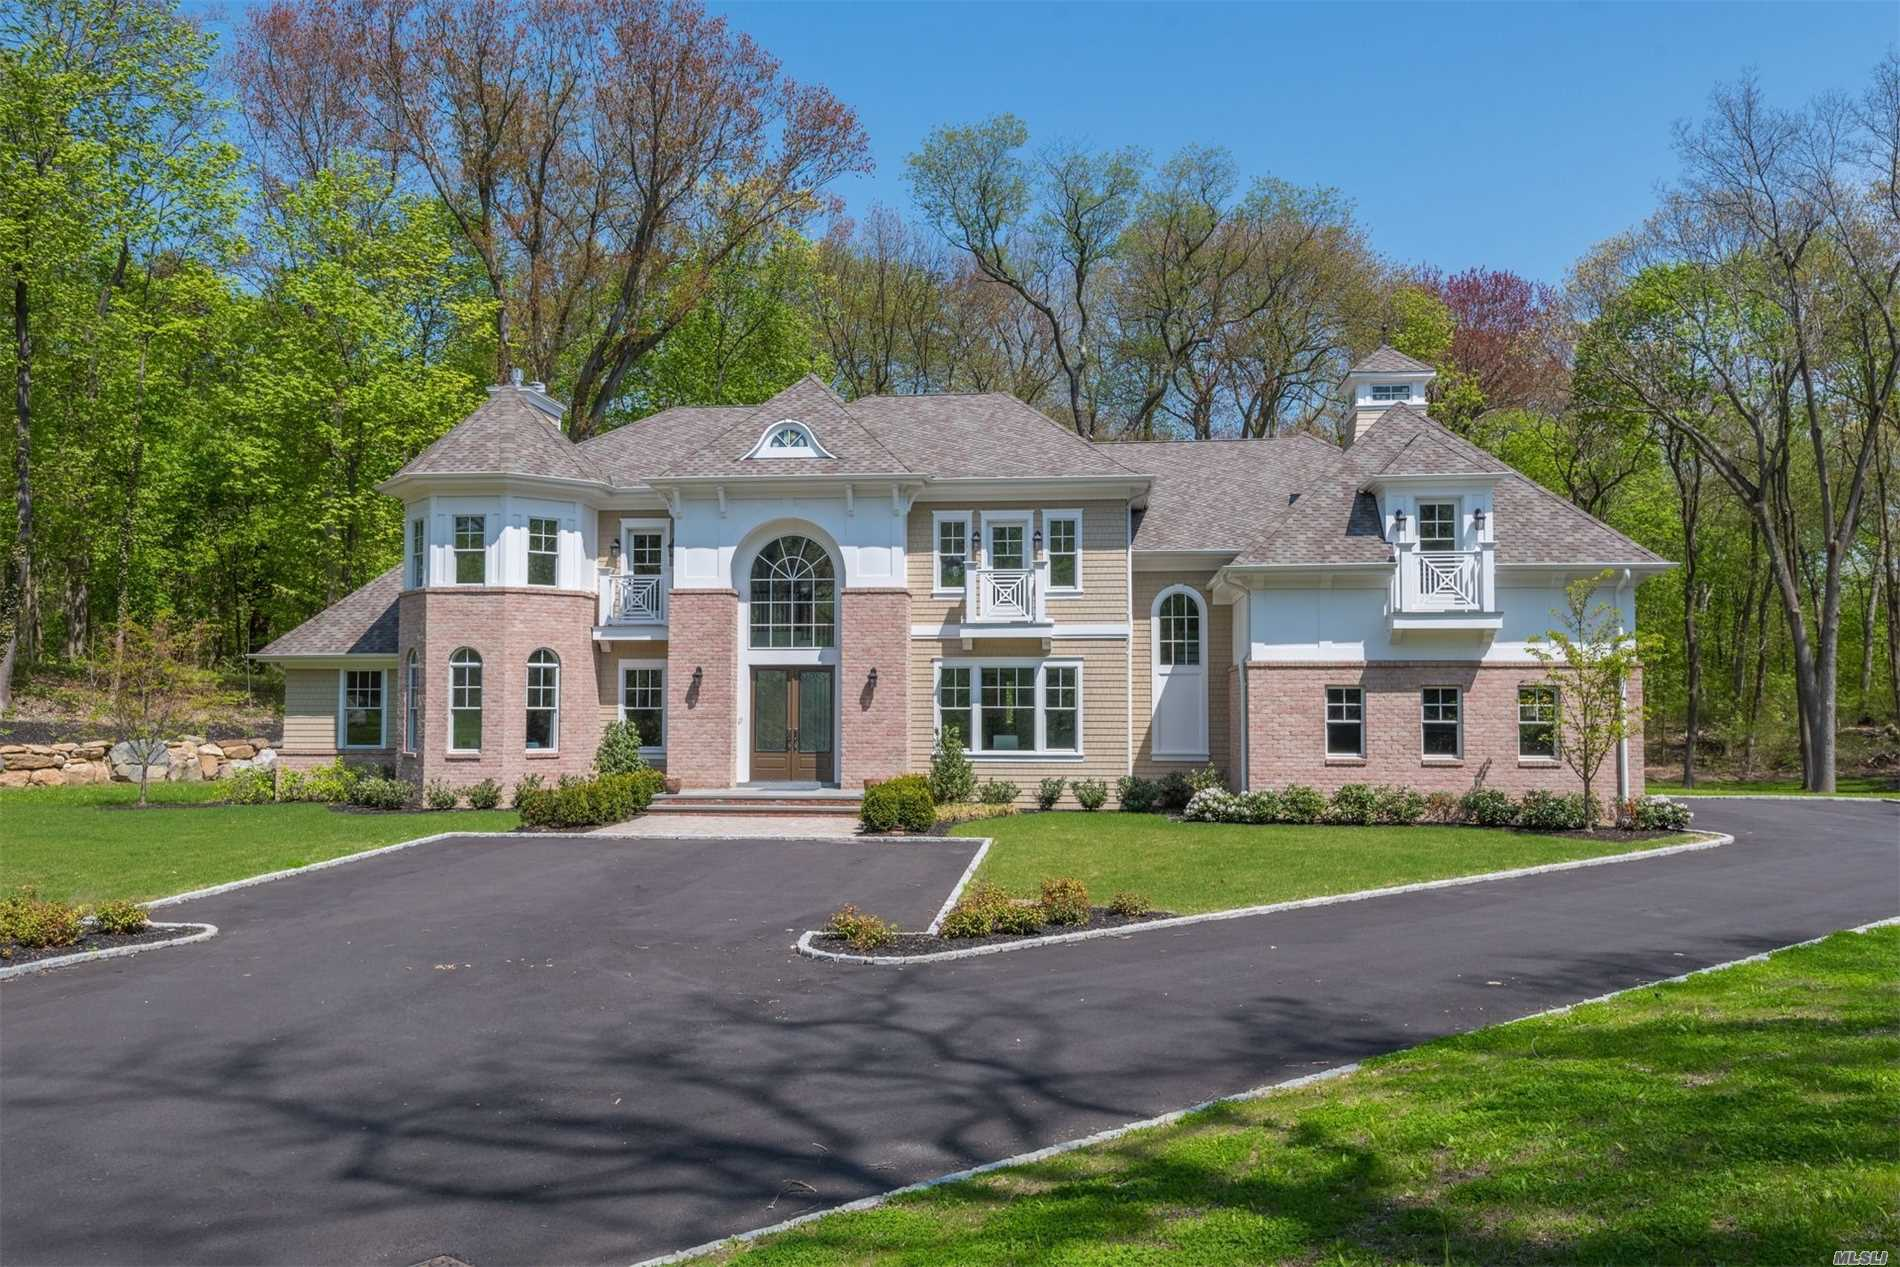 Spectacular New 6600Sqft Brick & Shingle Colonial In Famed Jericho Sd Combines Highest Quality Construction & Finest Materials With Fantastic Modern, Transitional Design. Beautiful Trim & Moldings Compliment Every Room Of This Sunlit Gem. Stunning 20' Foyer W Carrara Marble Floor, 10' Ceilings 1st Floor, 9' Ceilings 2nd Floor, 10 Lower Level Ceiling With Walk-Out, 5'' Oak Floors Throughout Generously Proportioned Rooms. Set On The Most Serene & Private 2 Acres With 3 Car Garage.